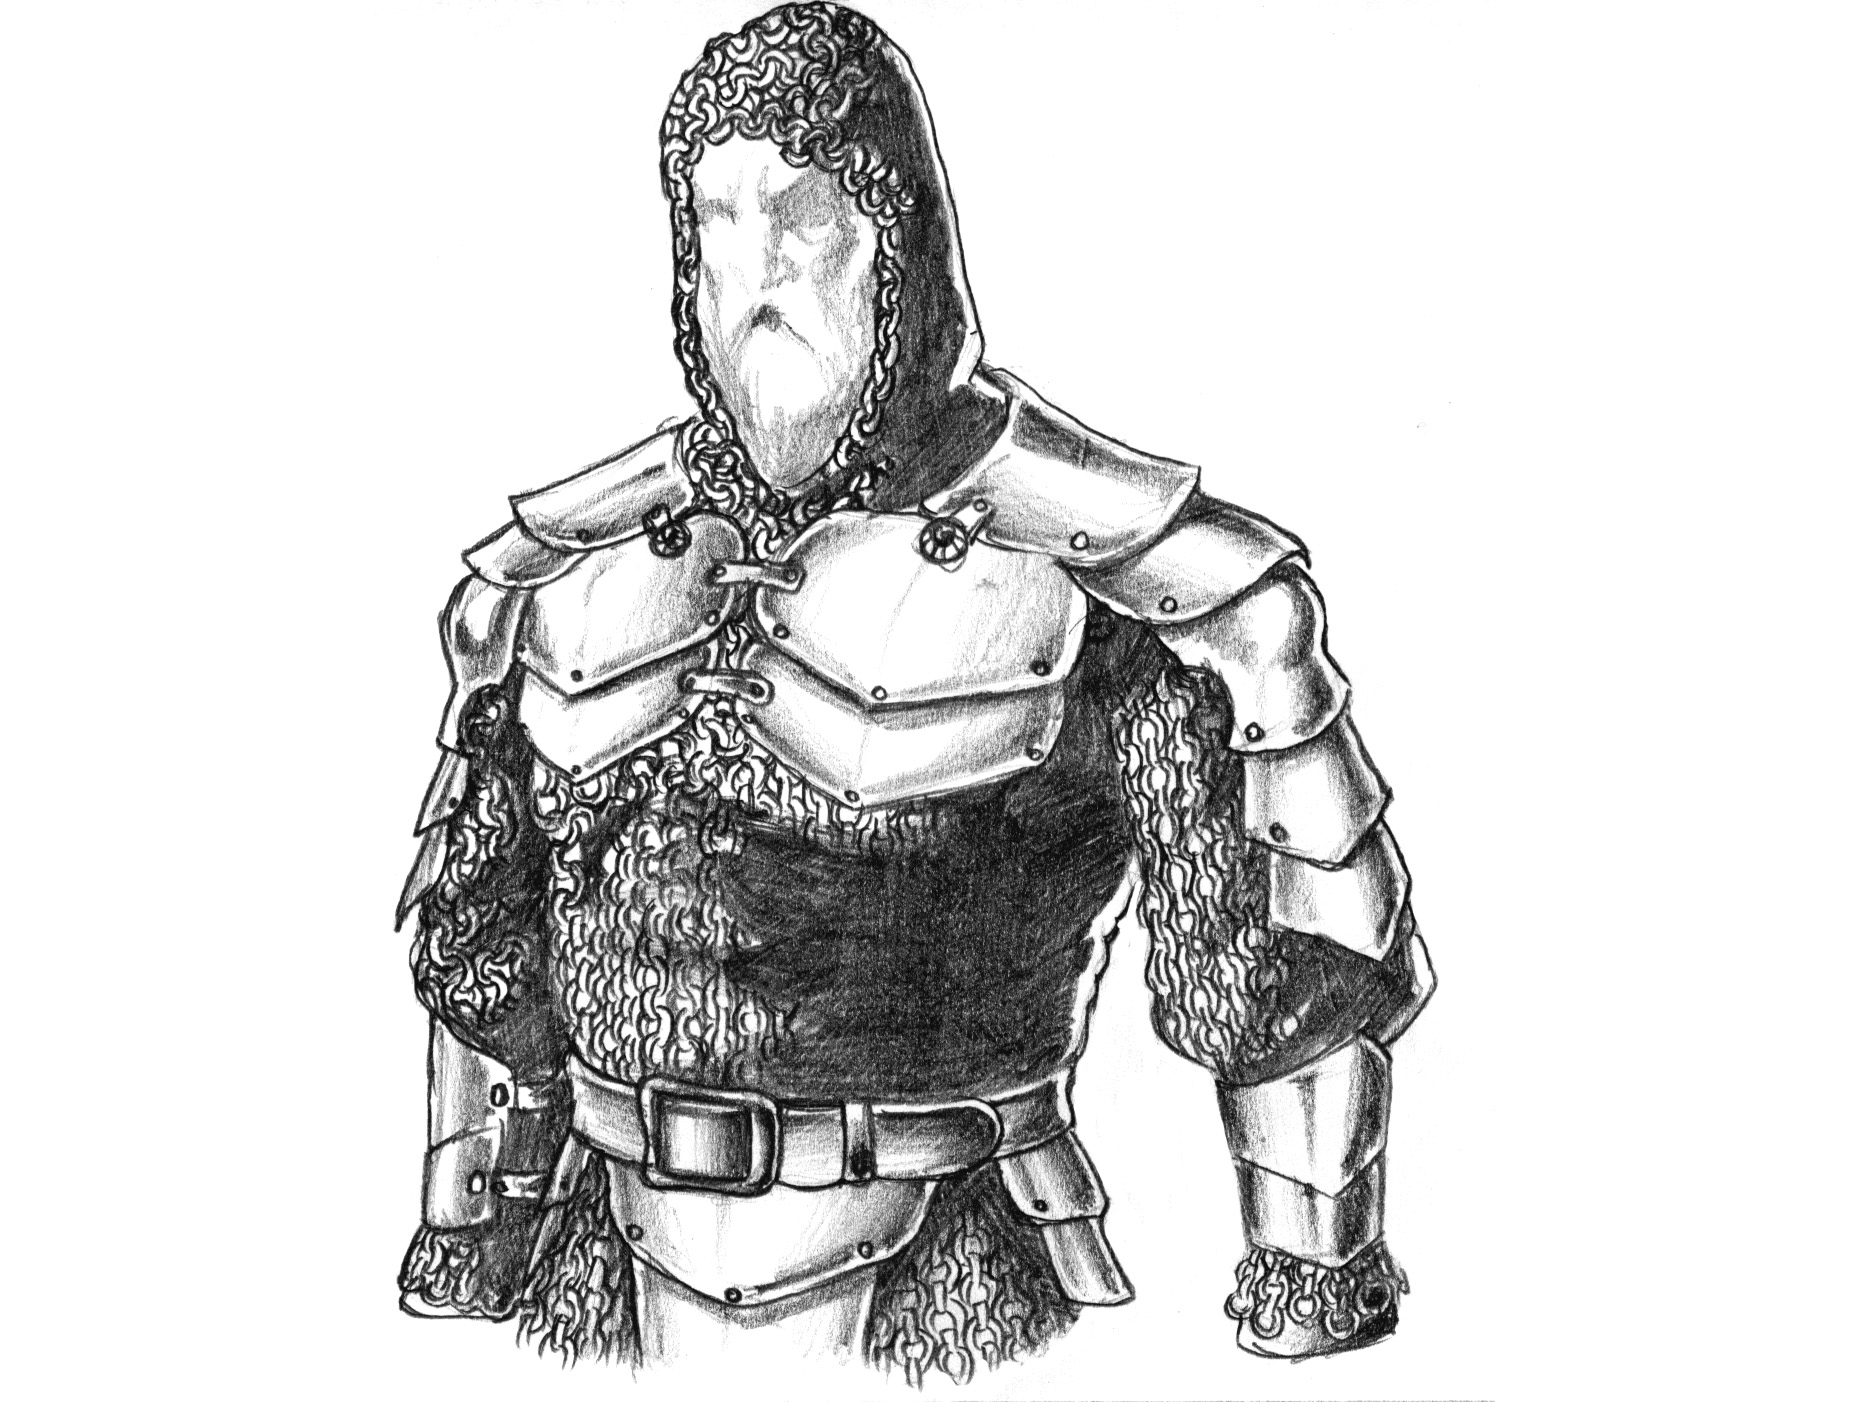 Drawn armor brigandine To to would Mun full